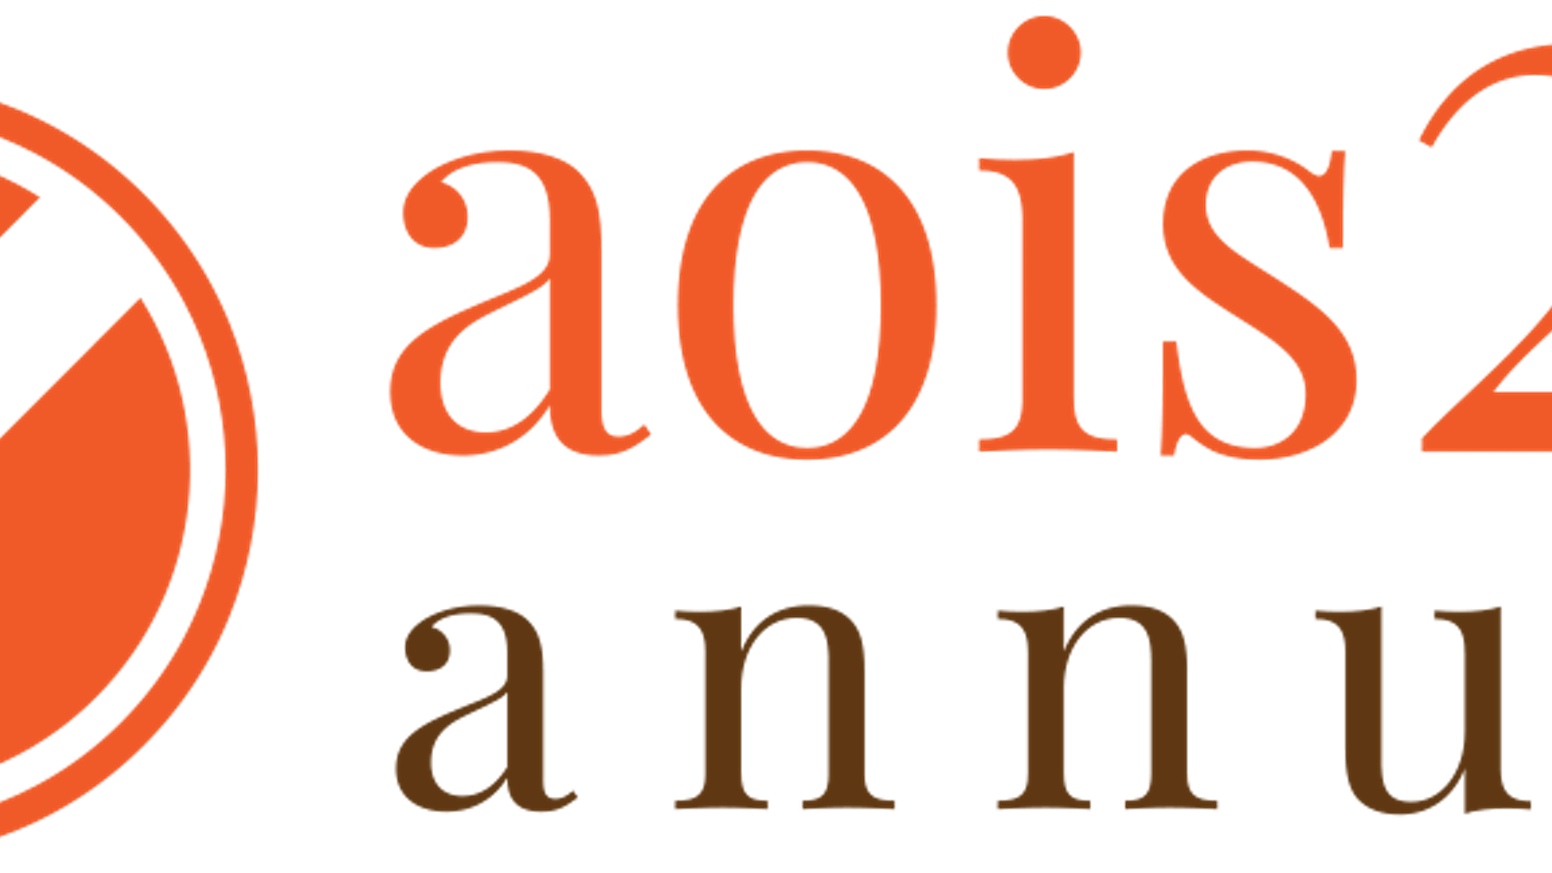 After our successful inaugural issue last fall, we are planning the second edition of the aois21 annual and want to expand our reach.